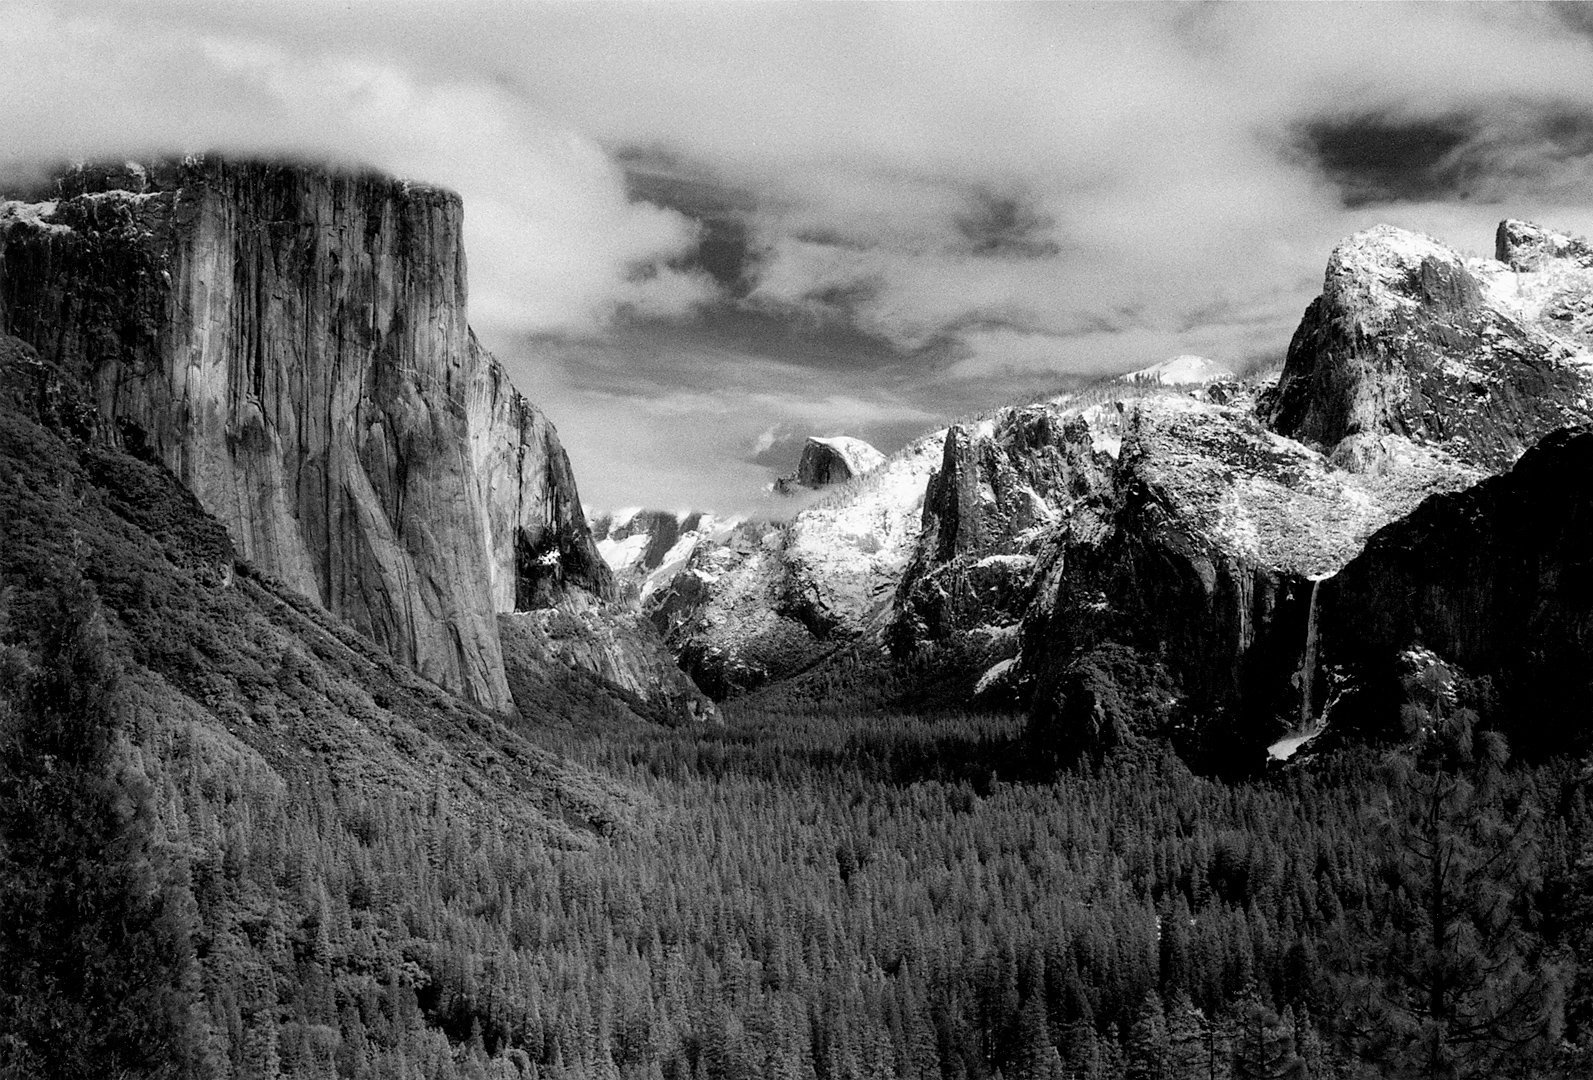 Yosemite National Park<br>Kodak Infrared film